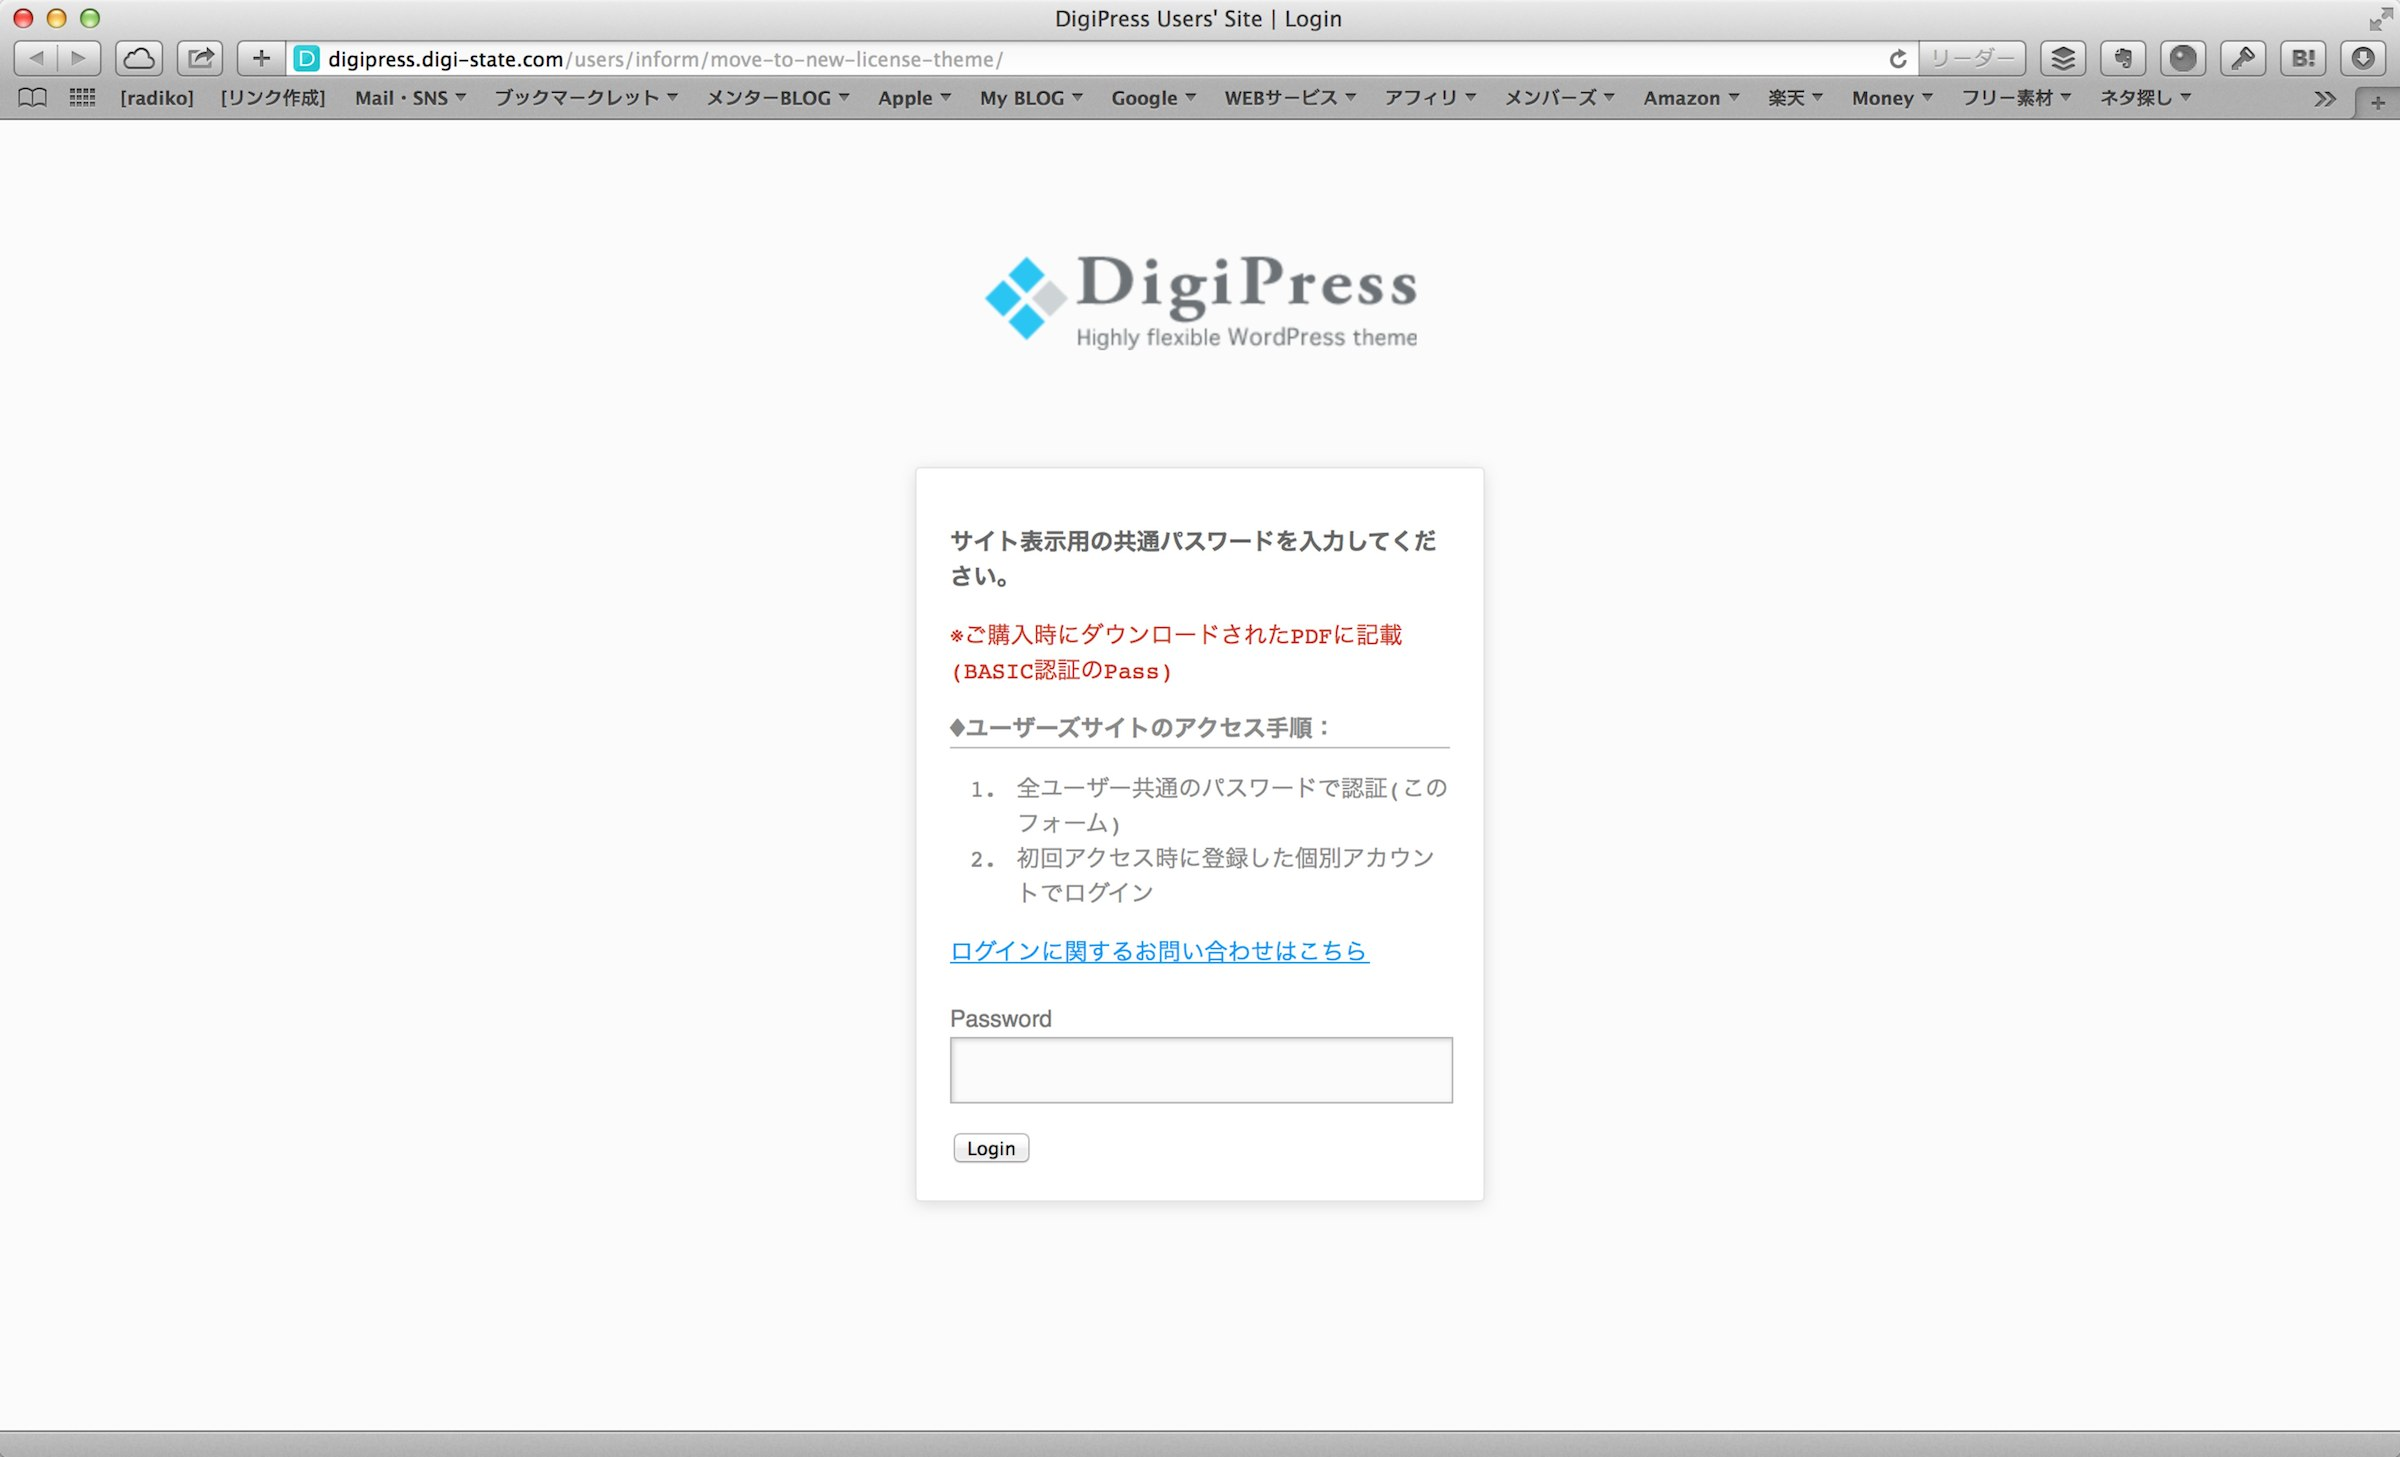 DigiPress Users_ Site | Login